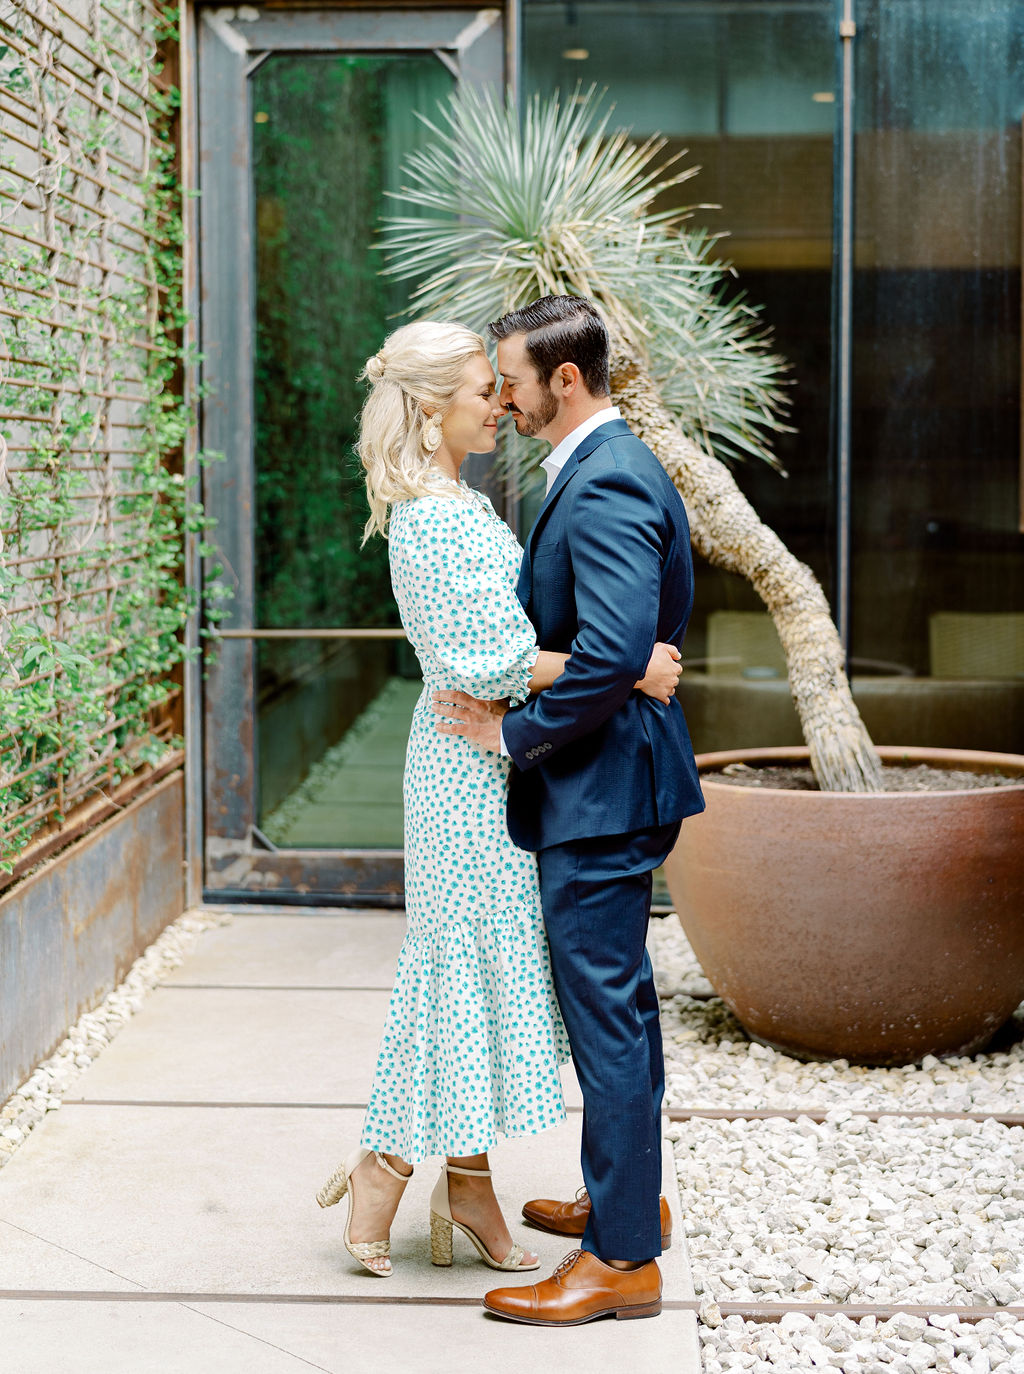 Austin-Elopement-Intimate-Wedding-Photographer-South-Congress-Hotel-Engagement-Session-17.jpg